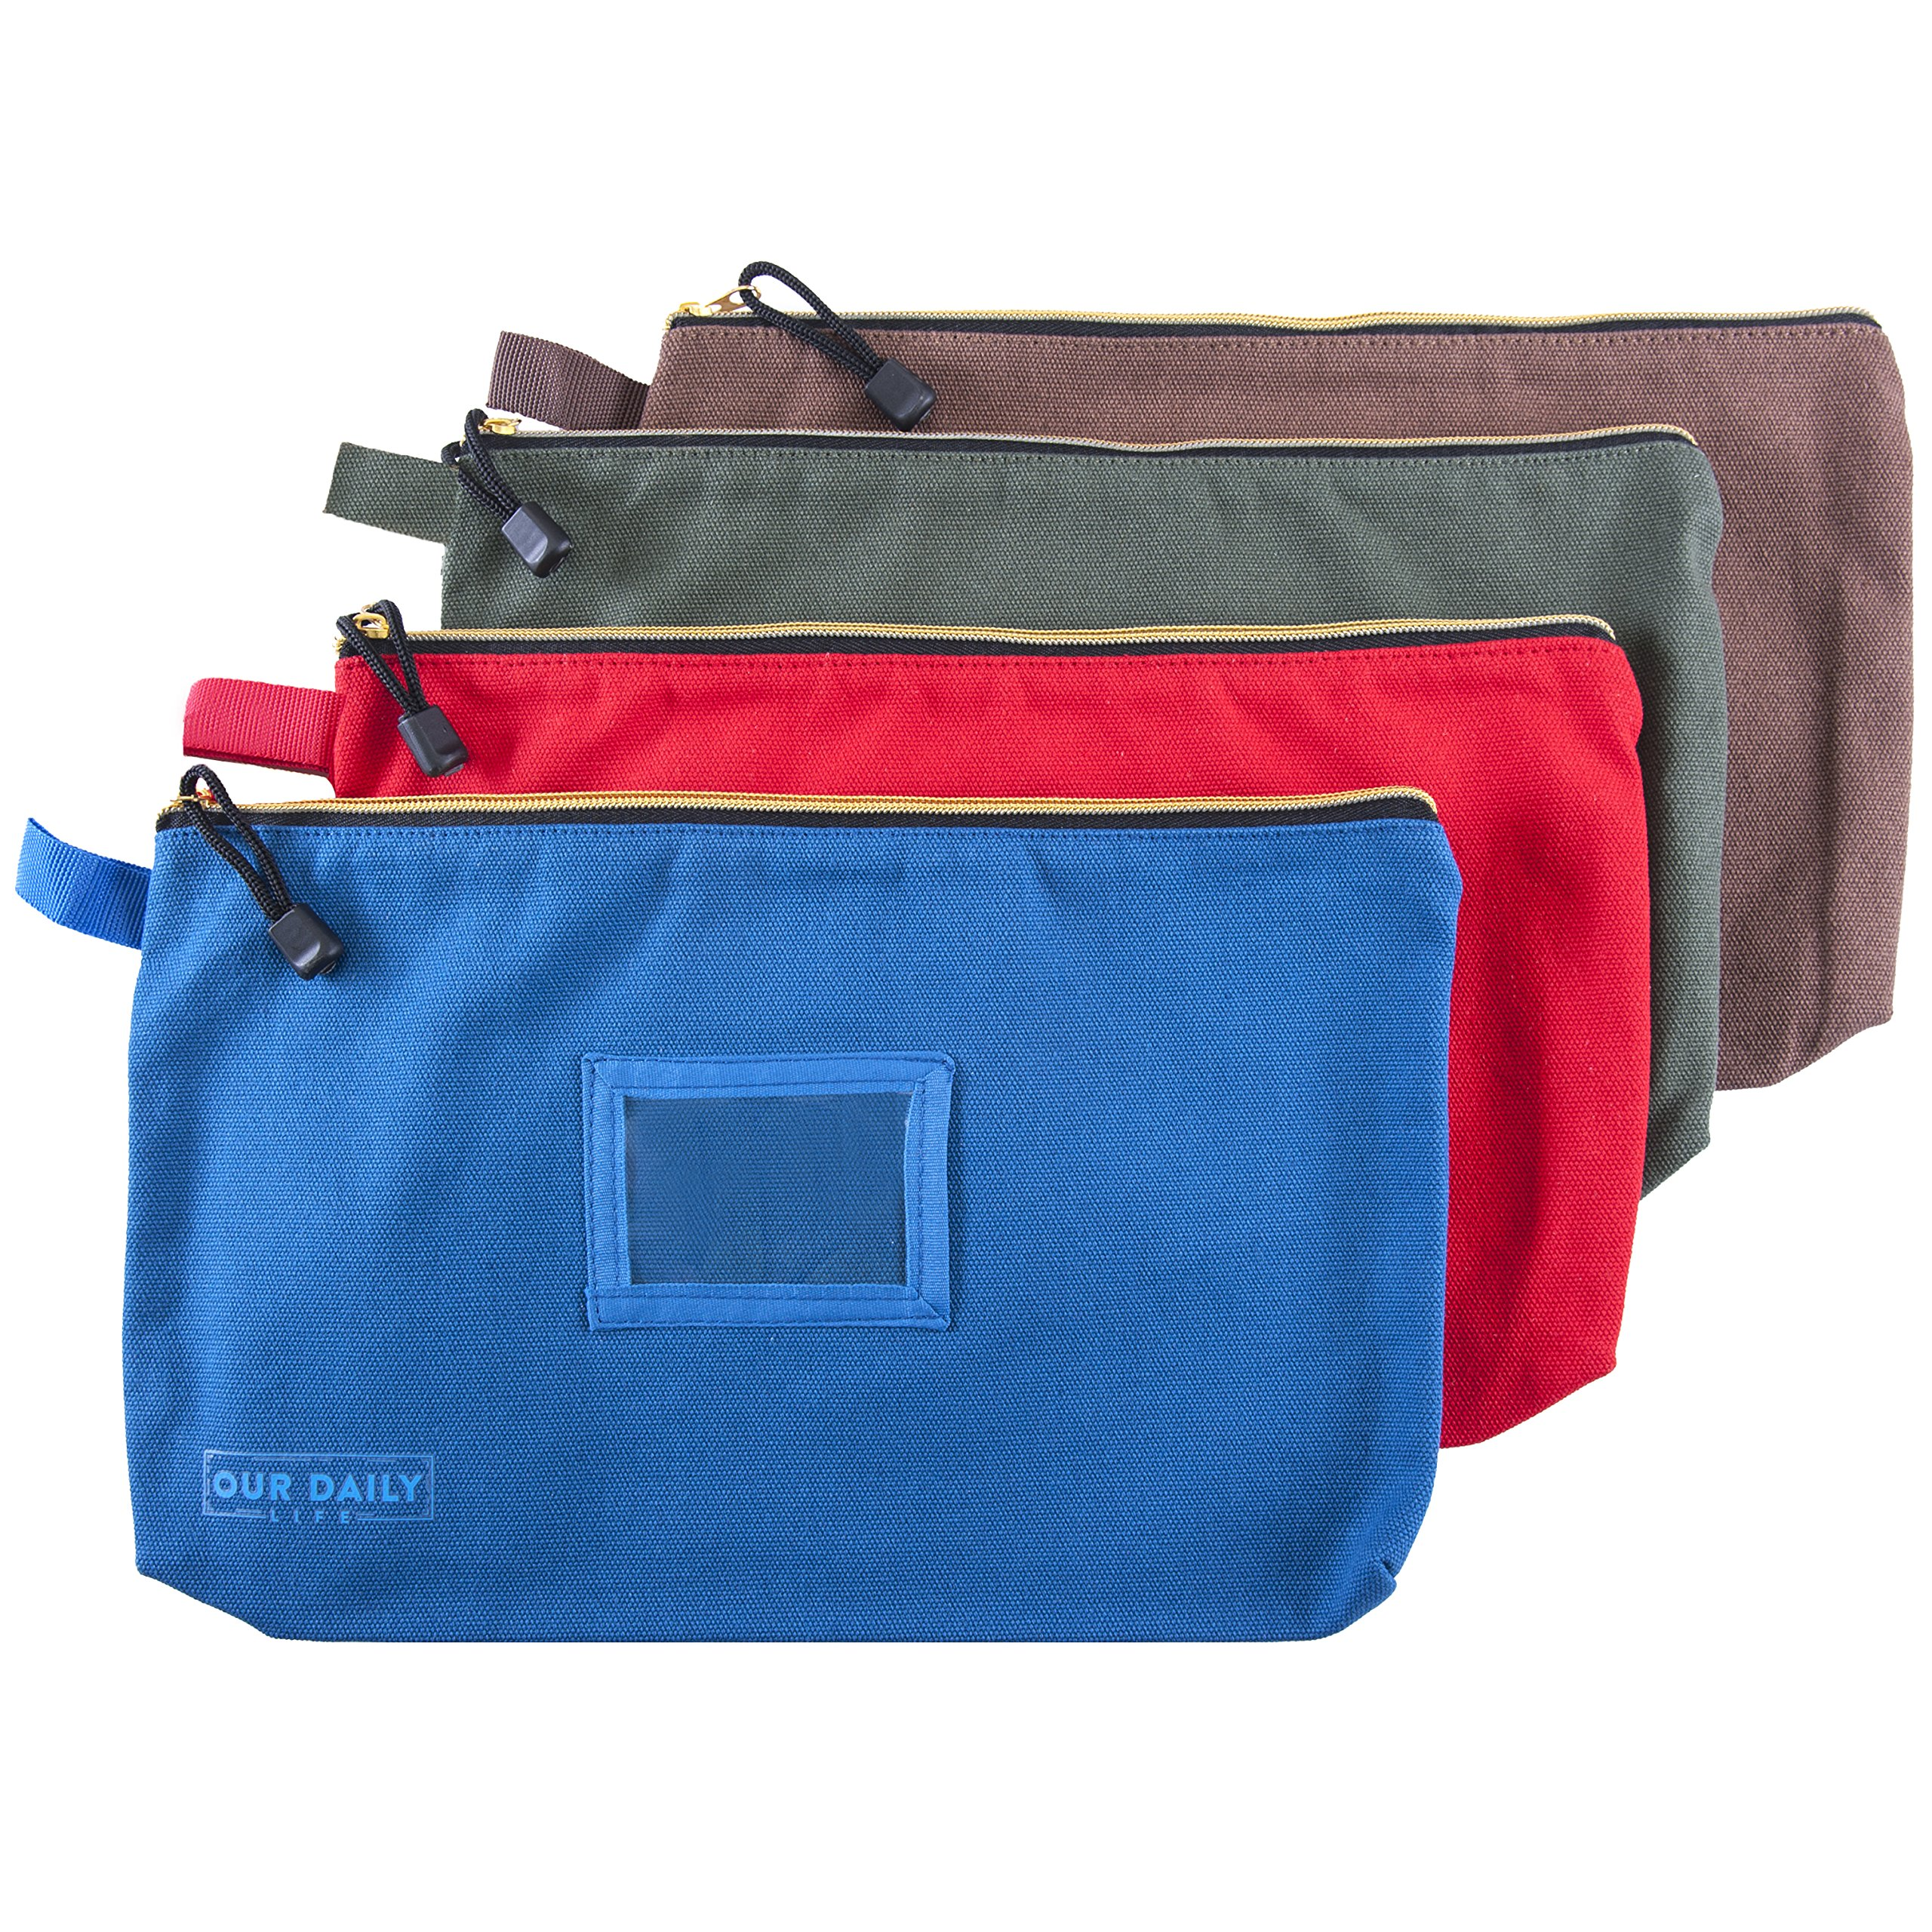 Canvas Zipper Tool Bags - 16 oz Heavy Duty Utility Bag - Water Resistant Multi-Purpose 13.7 inch X 8.5 inch Spacious Storage Pouches - 4 Pack Organizer Set - Tools, Cosmetics, Art and more.